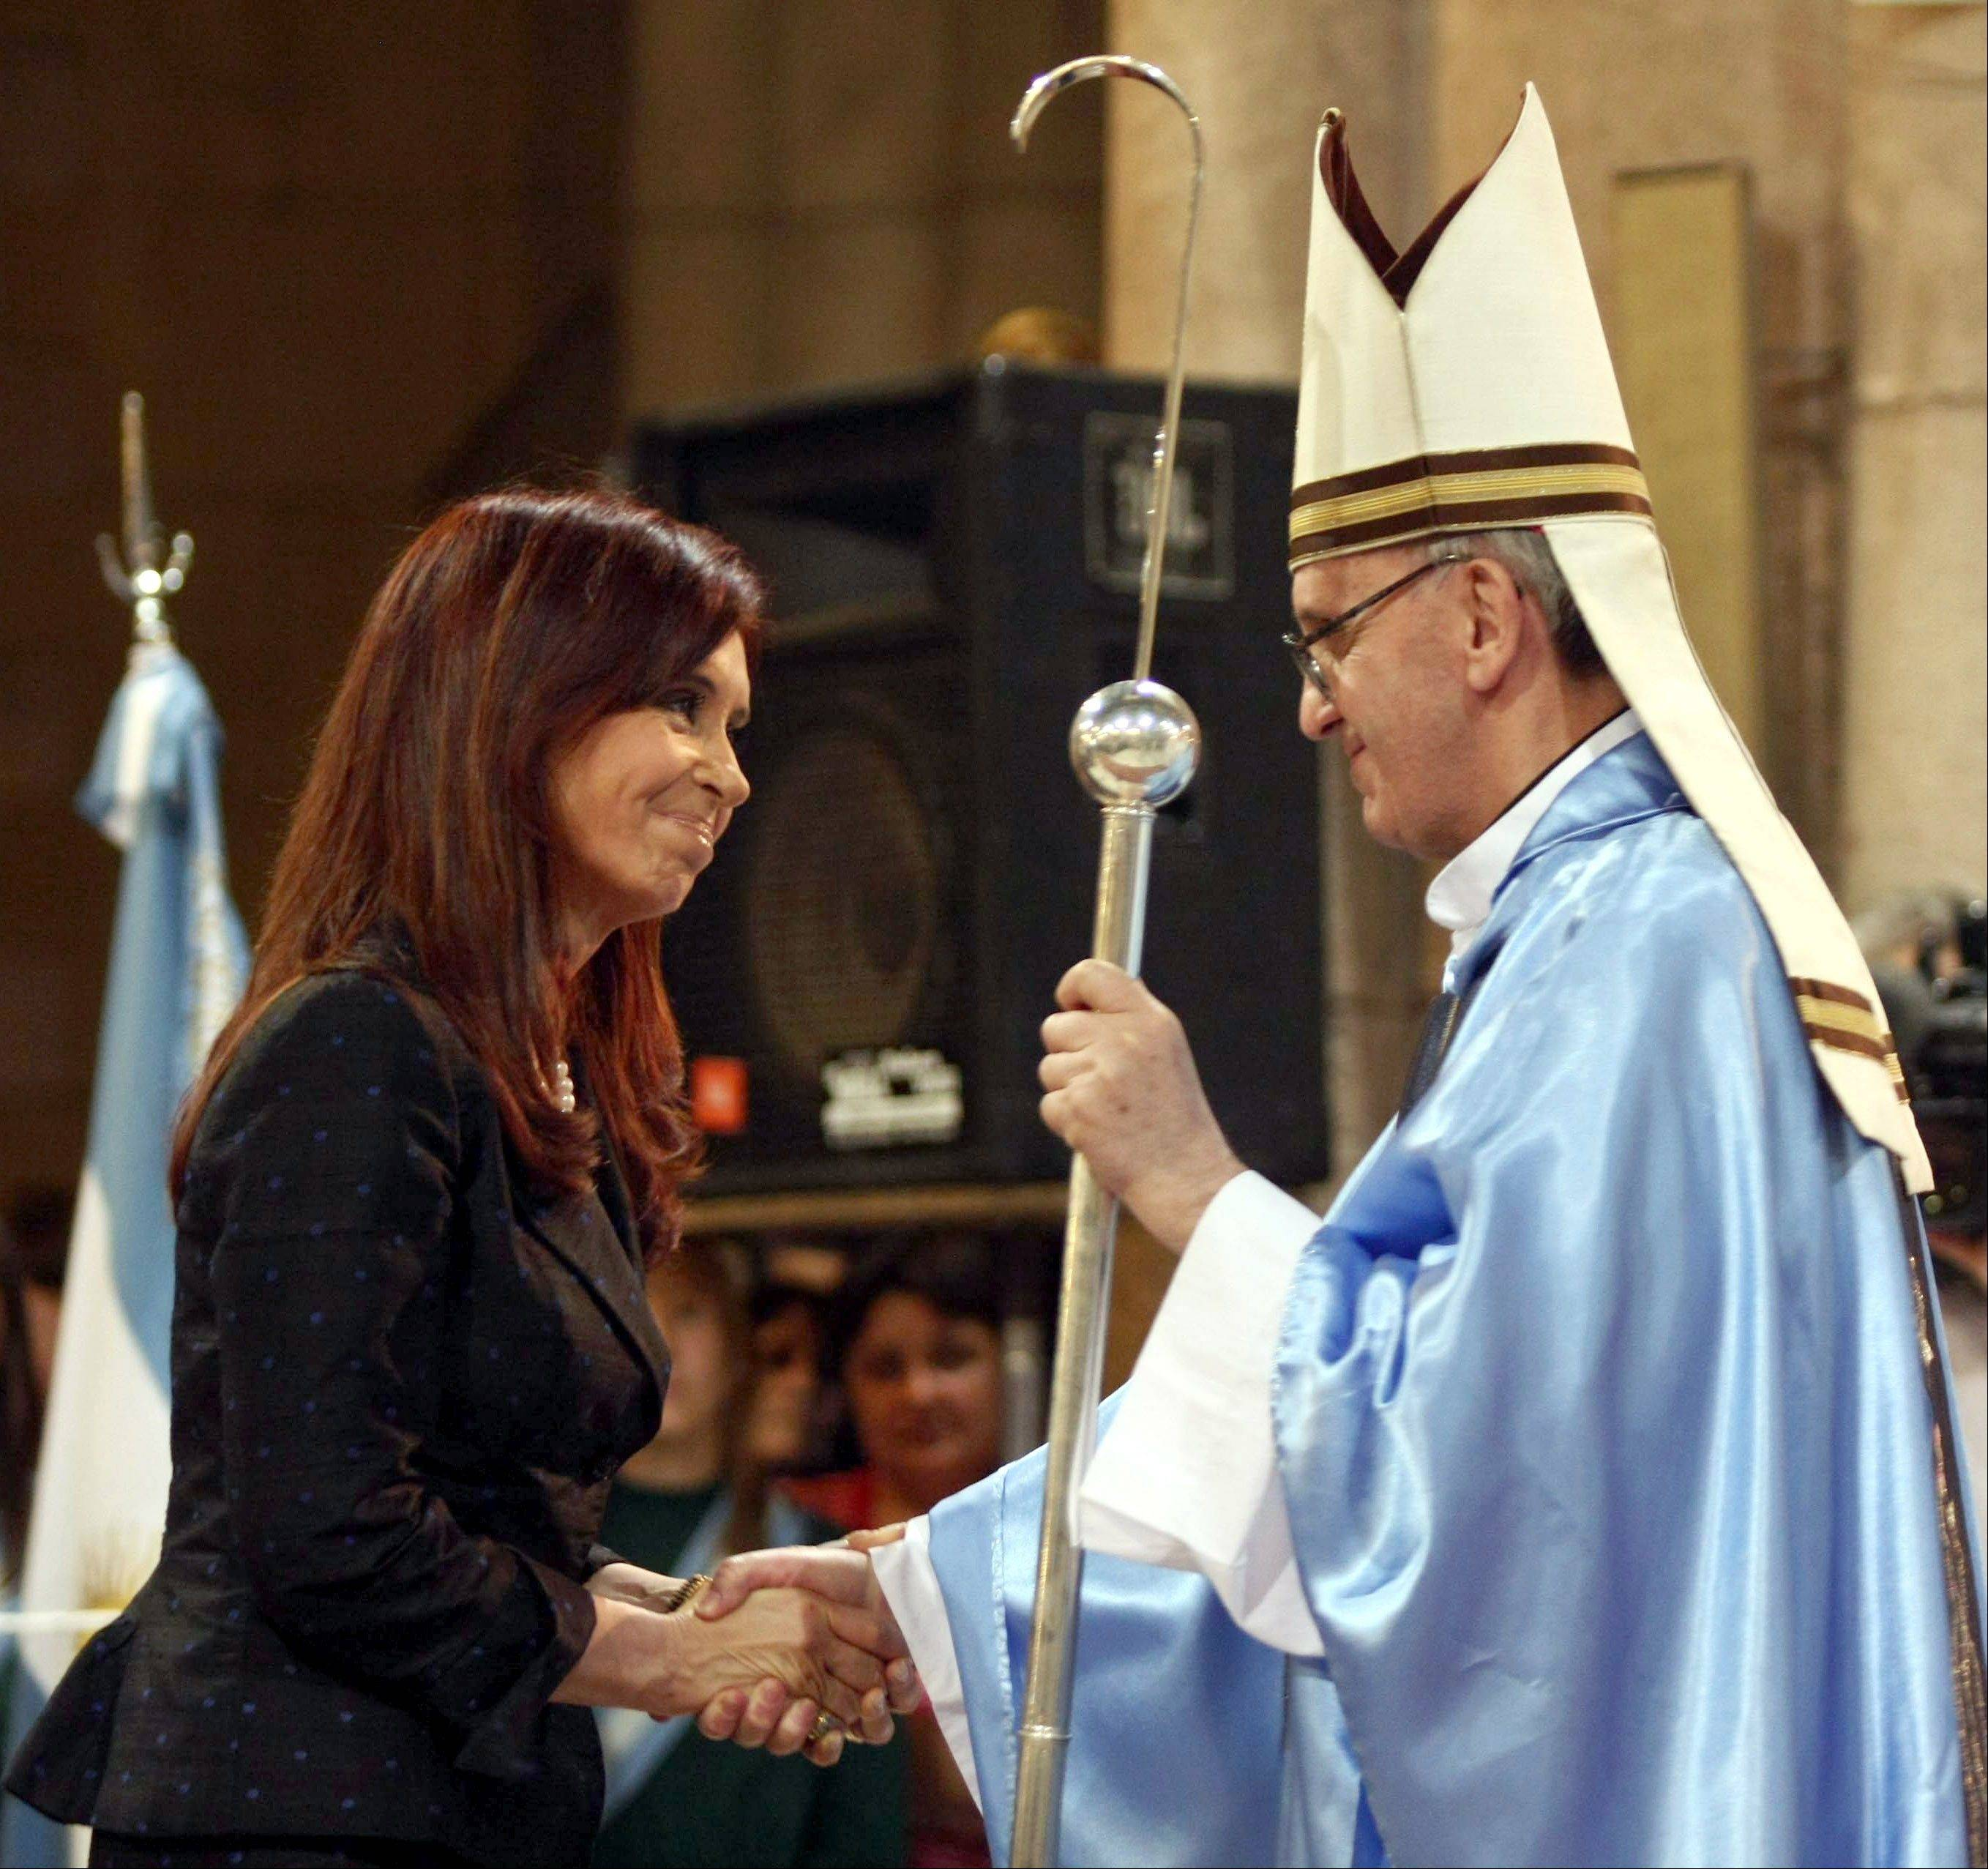 Argentina's President Cristina Fernandez, left, shakes hands with Buenos Aires' then-archbishop Jorge Mario Bergoglio in 2008 in Lujan, Argentina. Pope Francis' diplomatic skills were put to the test Monday as he lunched with Fernandez, with whom he has had a contentious relationship.